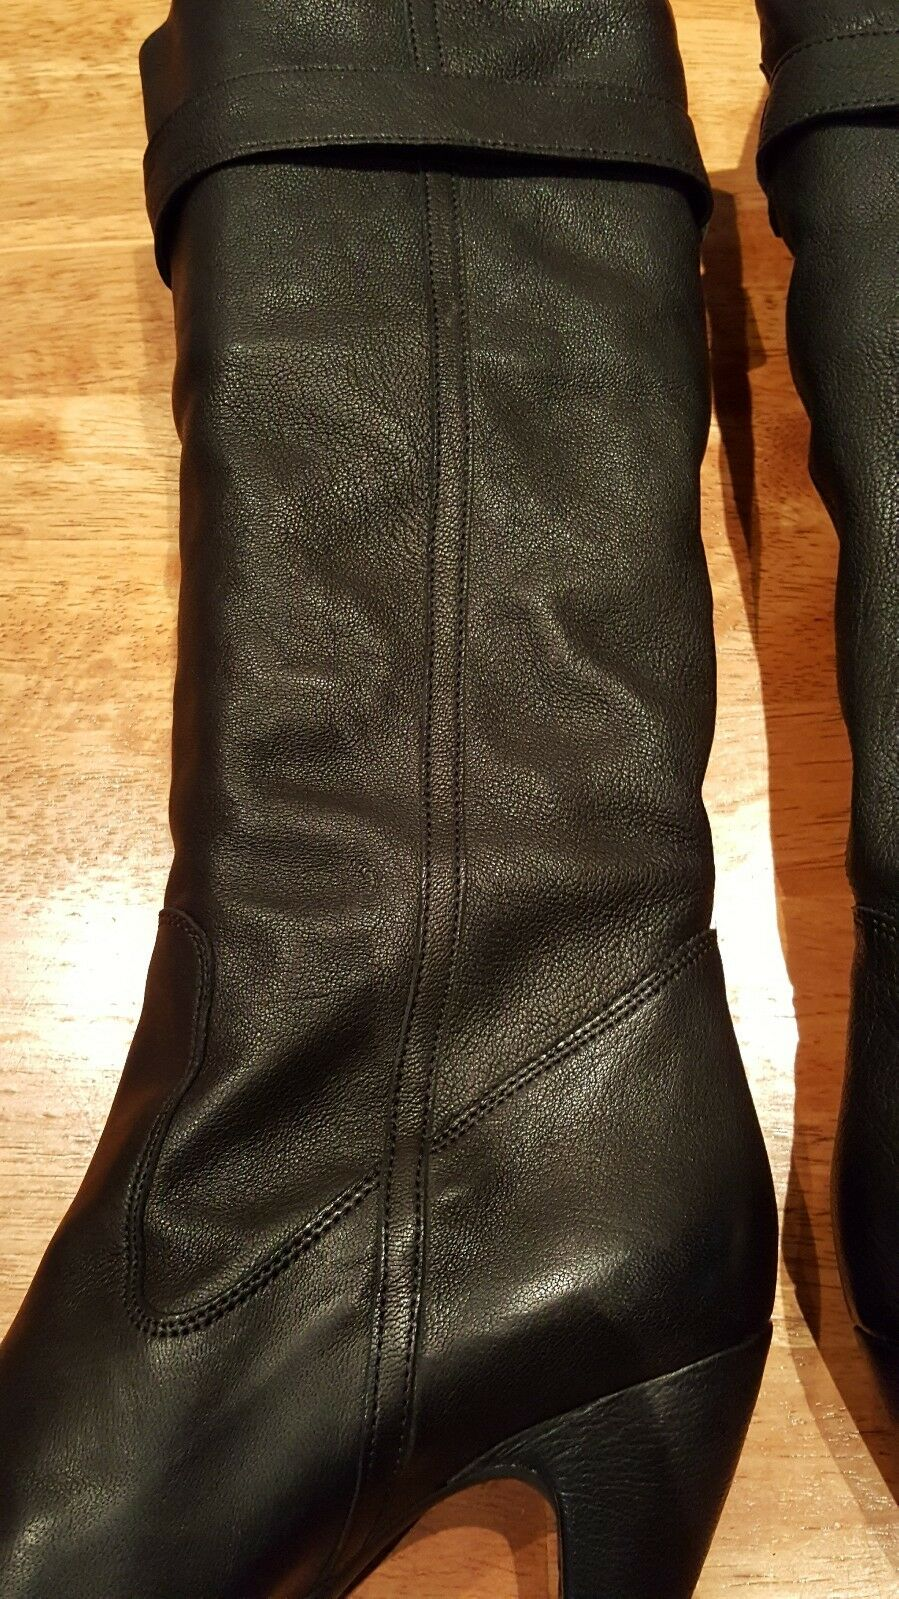 New  FORNARINA Knee Knee Knee High Soft Nubuck Leather Dress Boots Pull-On Black, Sz 9.5 703400